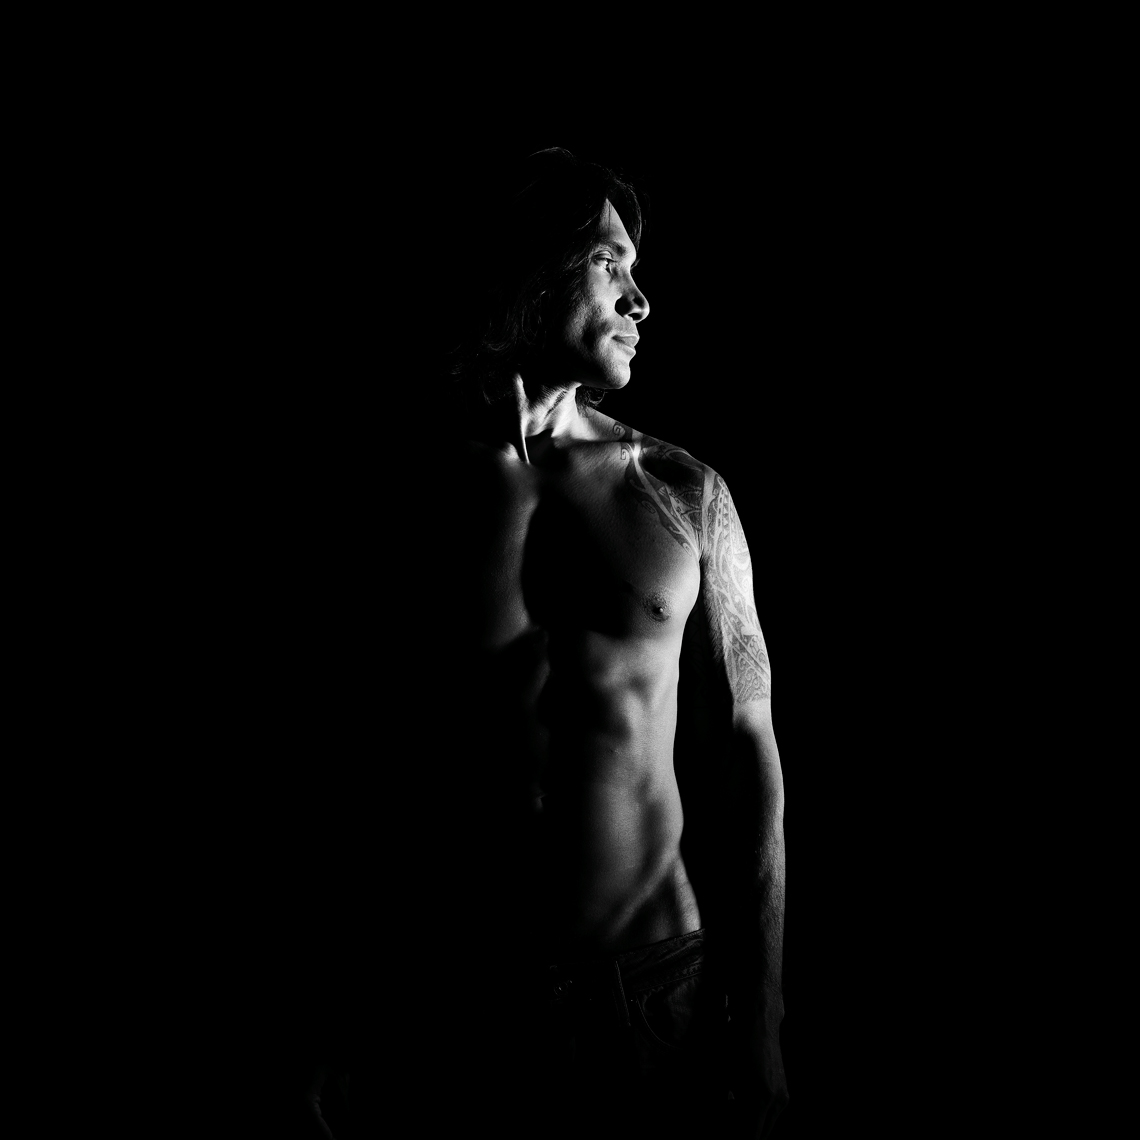 Dramatic Black and white of a topless man with tattoos